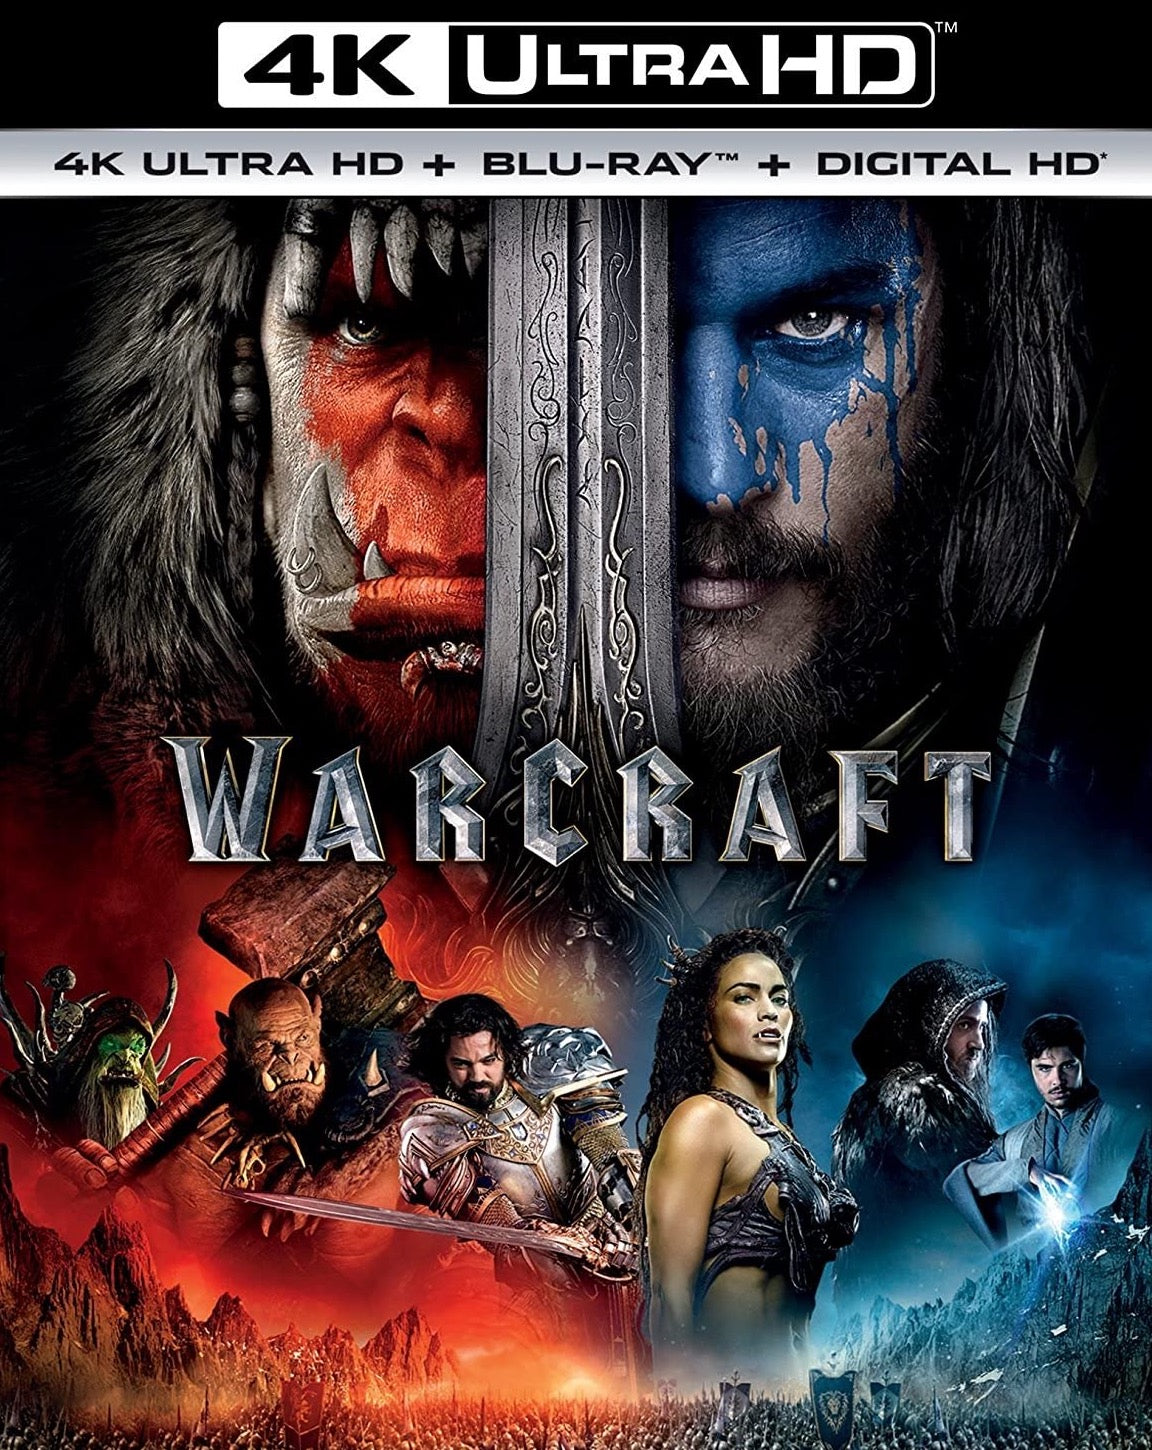 Warcraft iTunes 4K redemption only